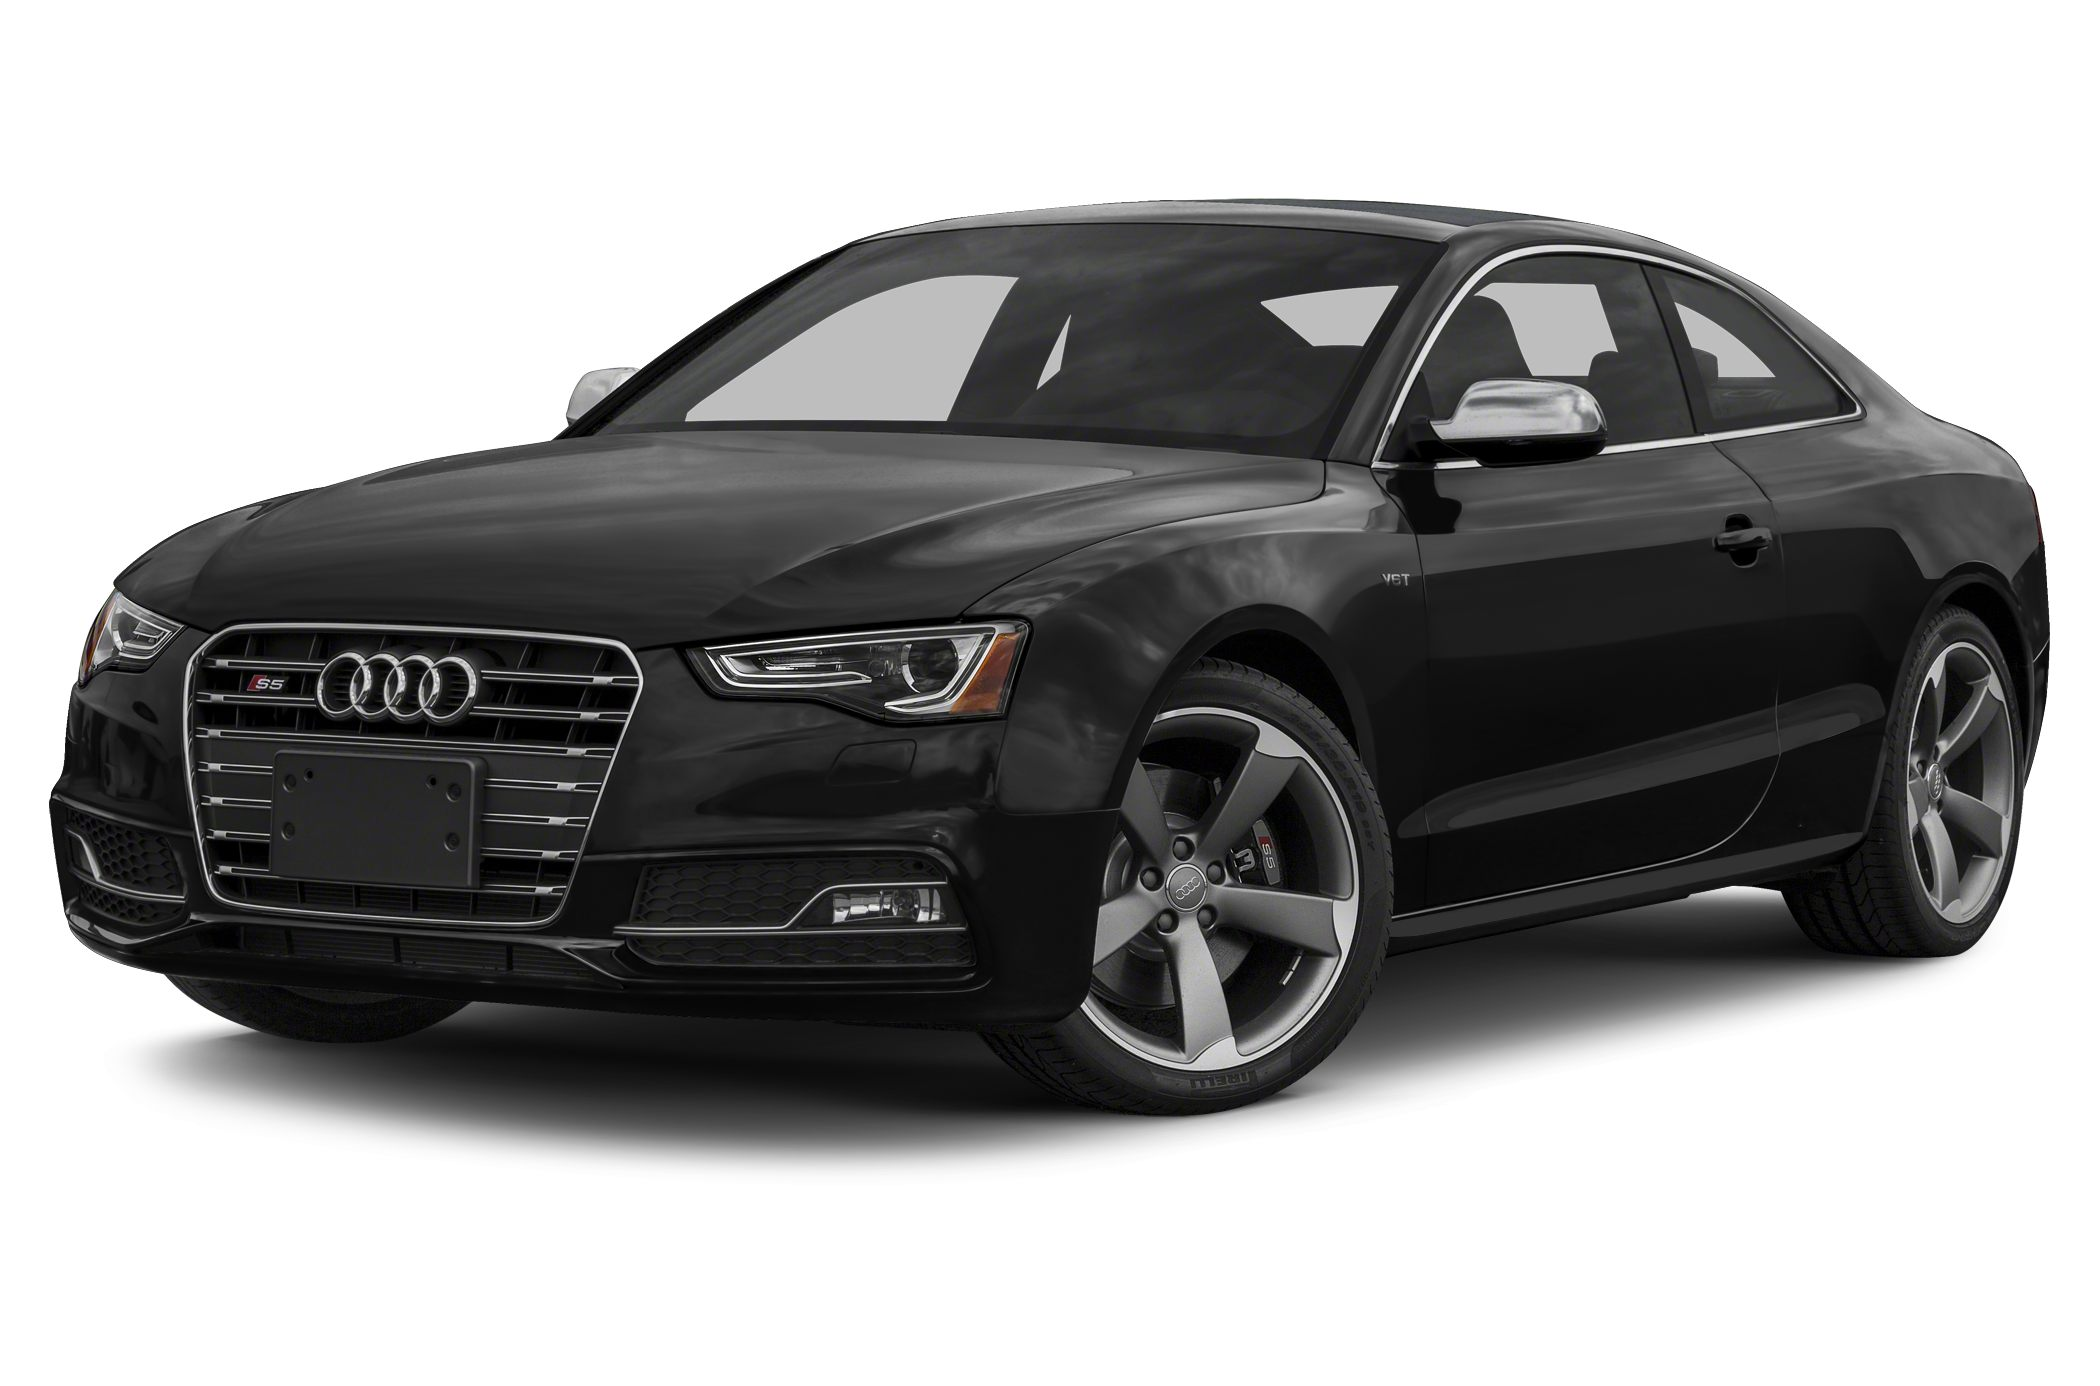 2013 audi s5 specs and prices